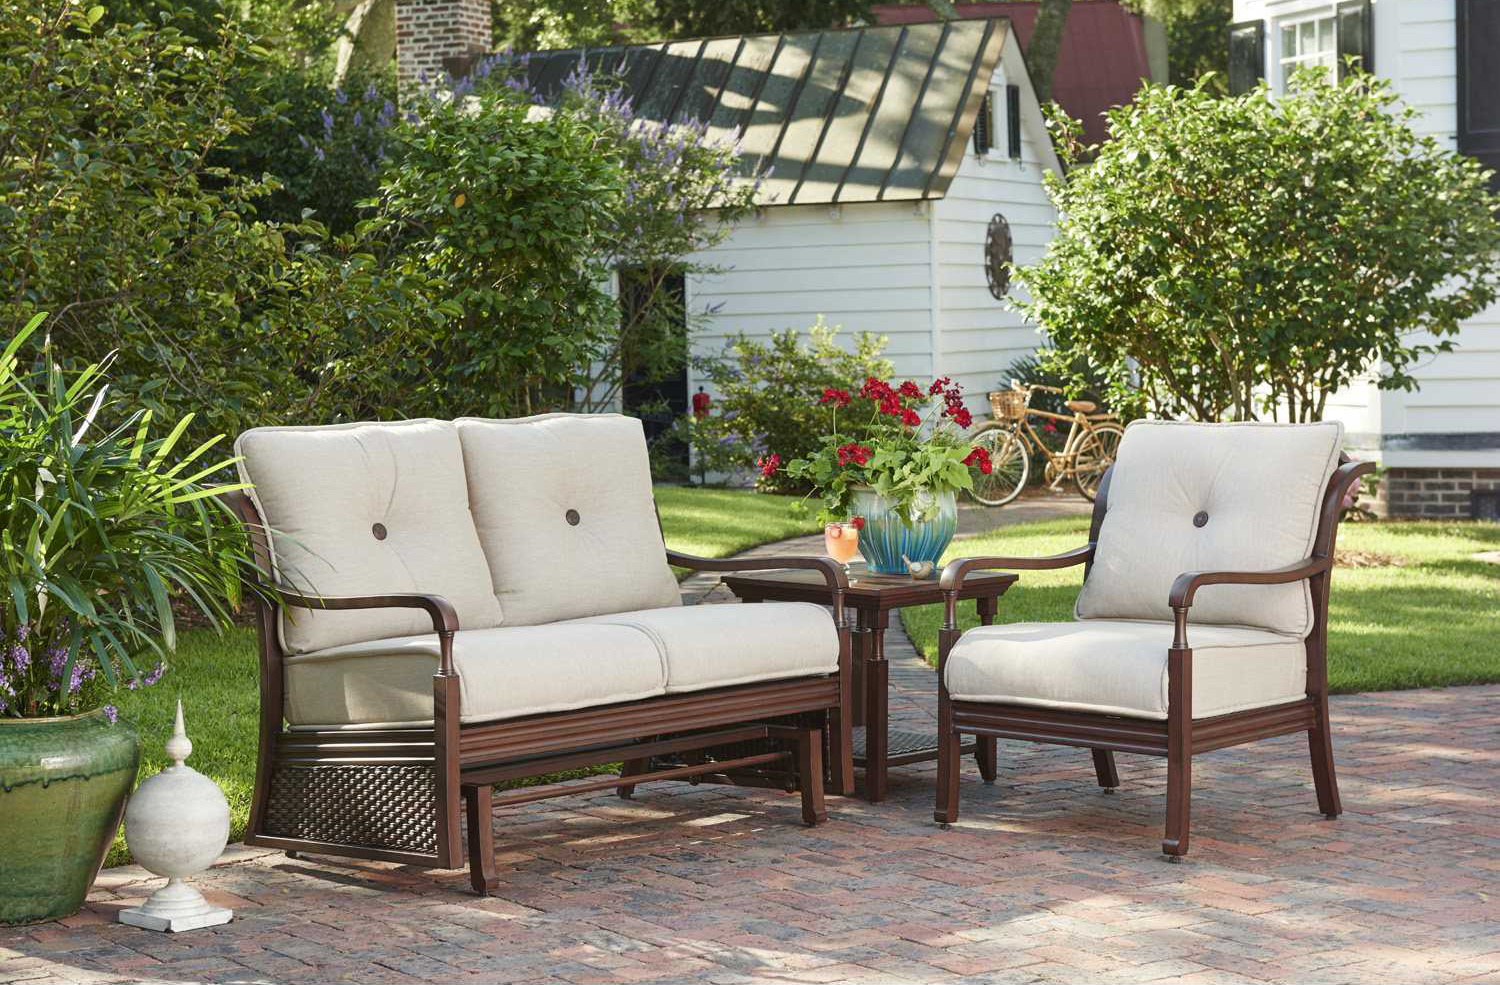 When choosing outdoor patio furniture, it is important to select materials  that are manufactured to withstand outdoor conditions like prolonged  exposure to ... - Everything You Need To Know About Sunbrella